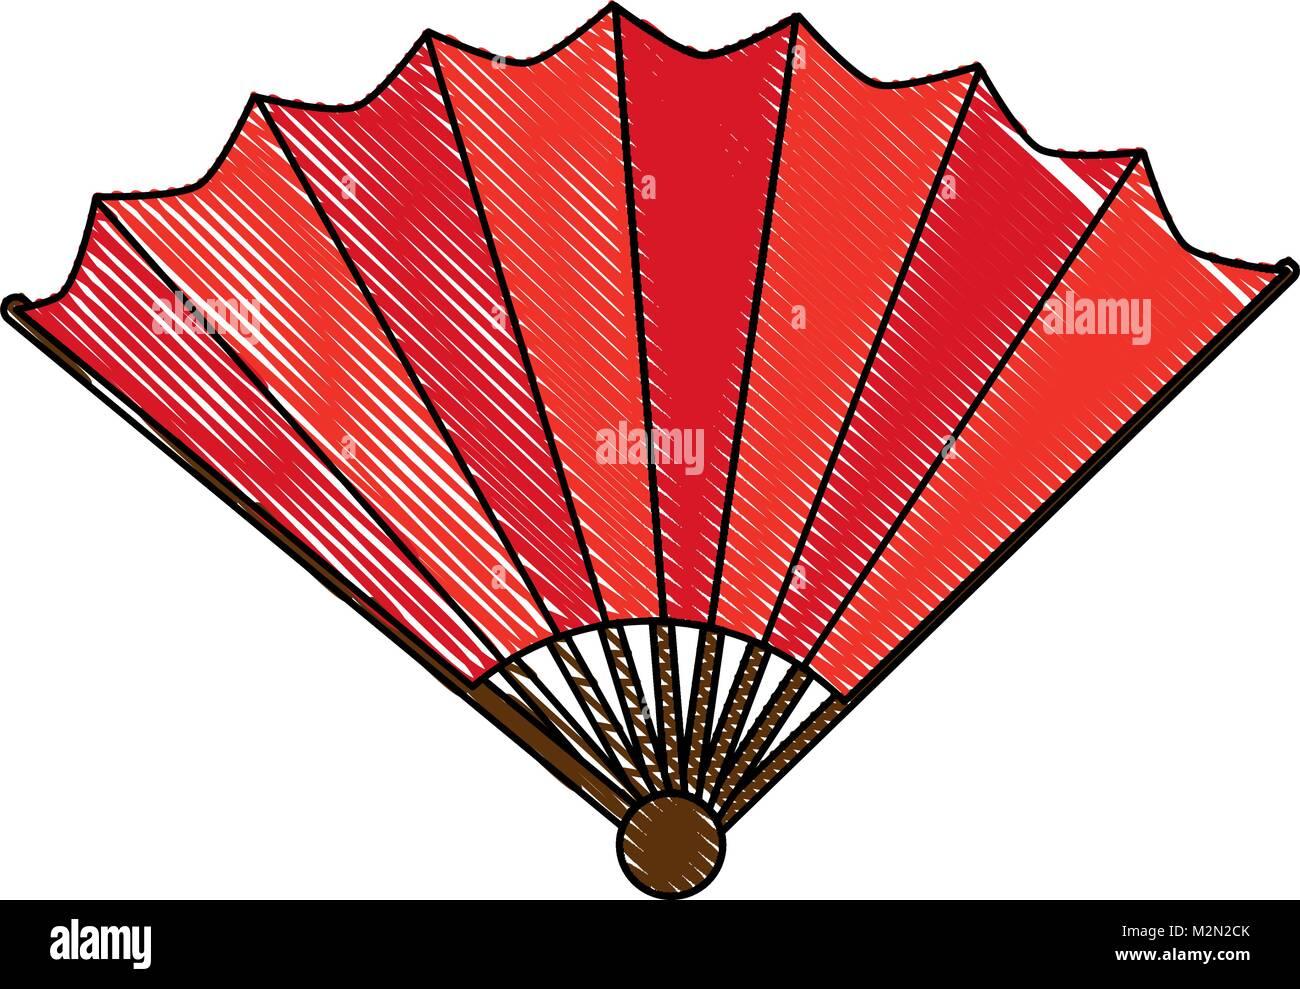 chinese fan decorative icon - Stock Vector